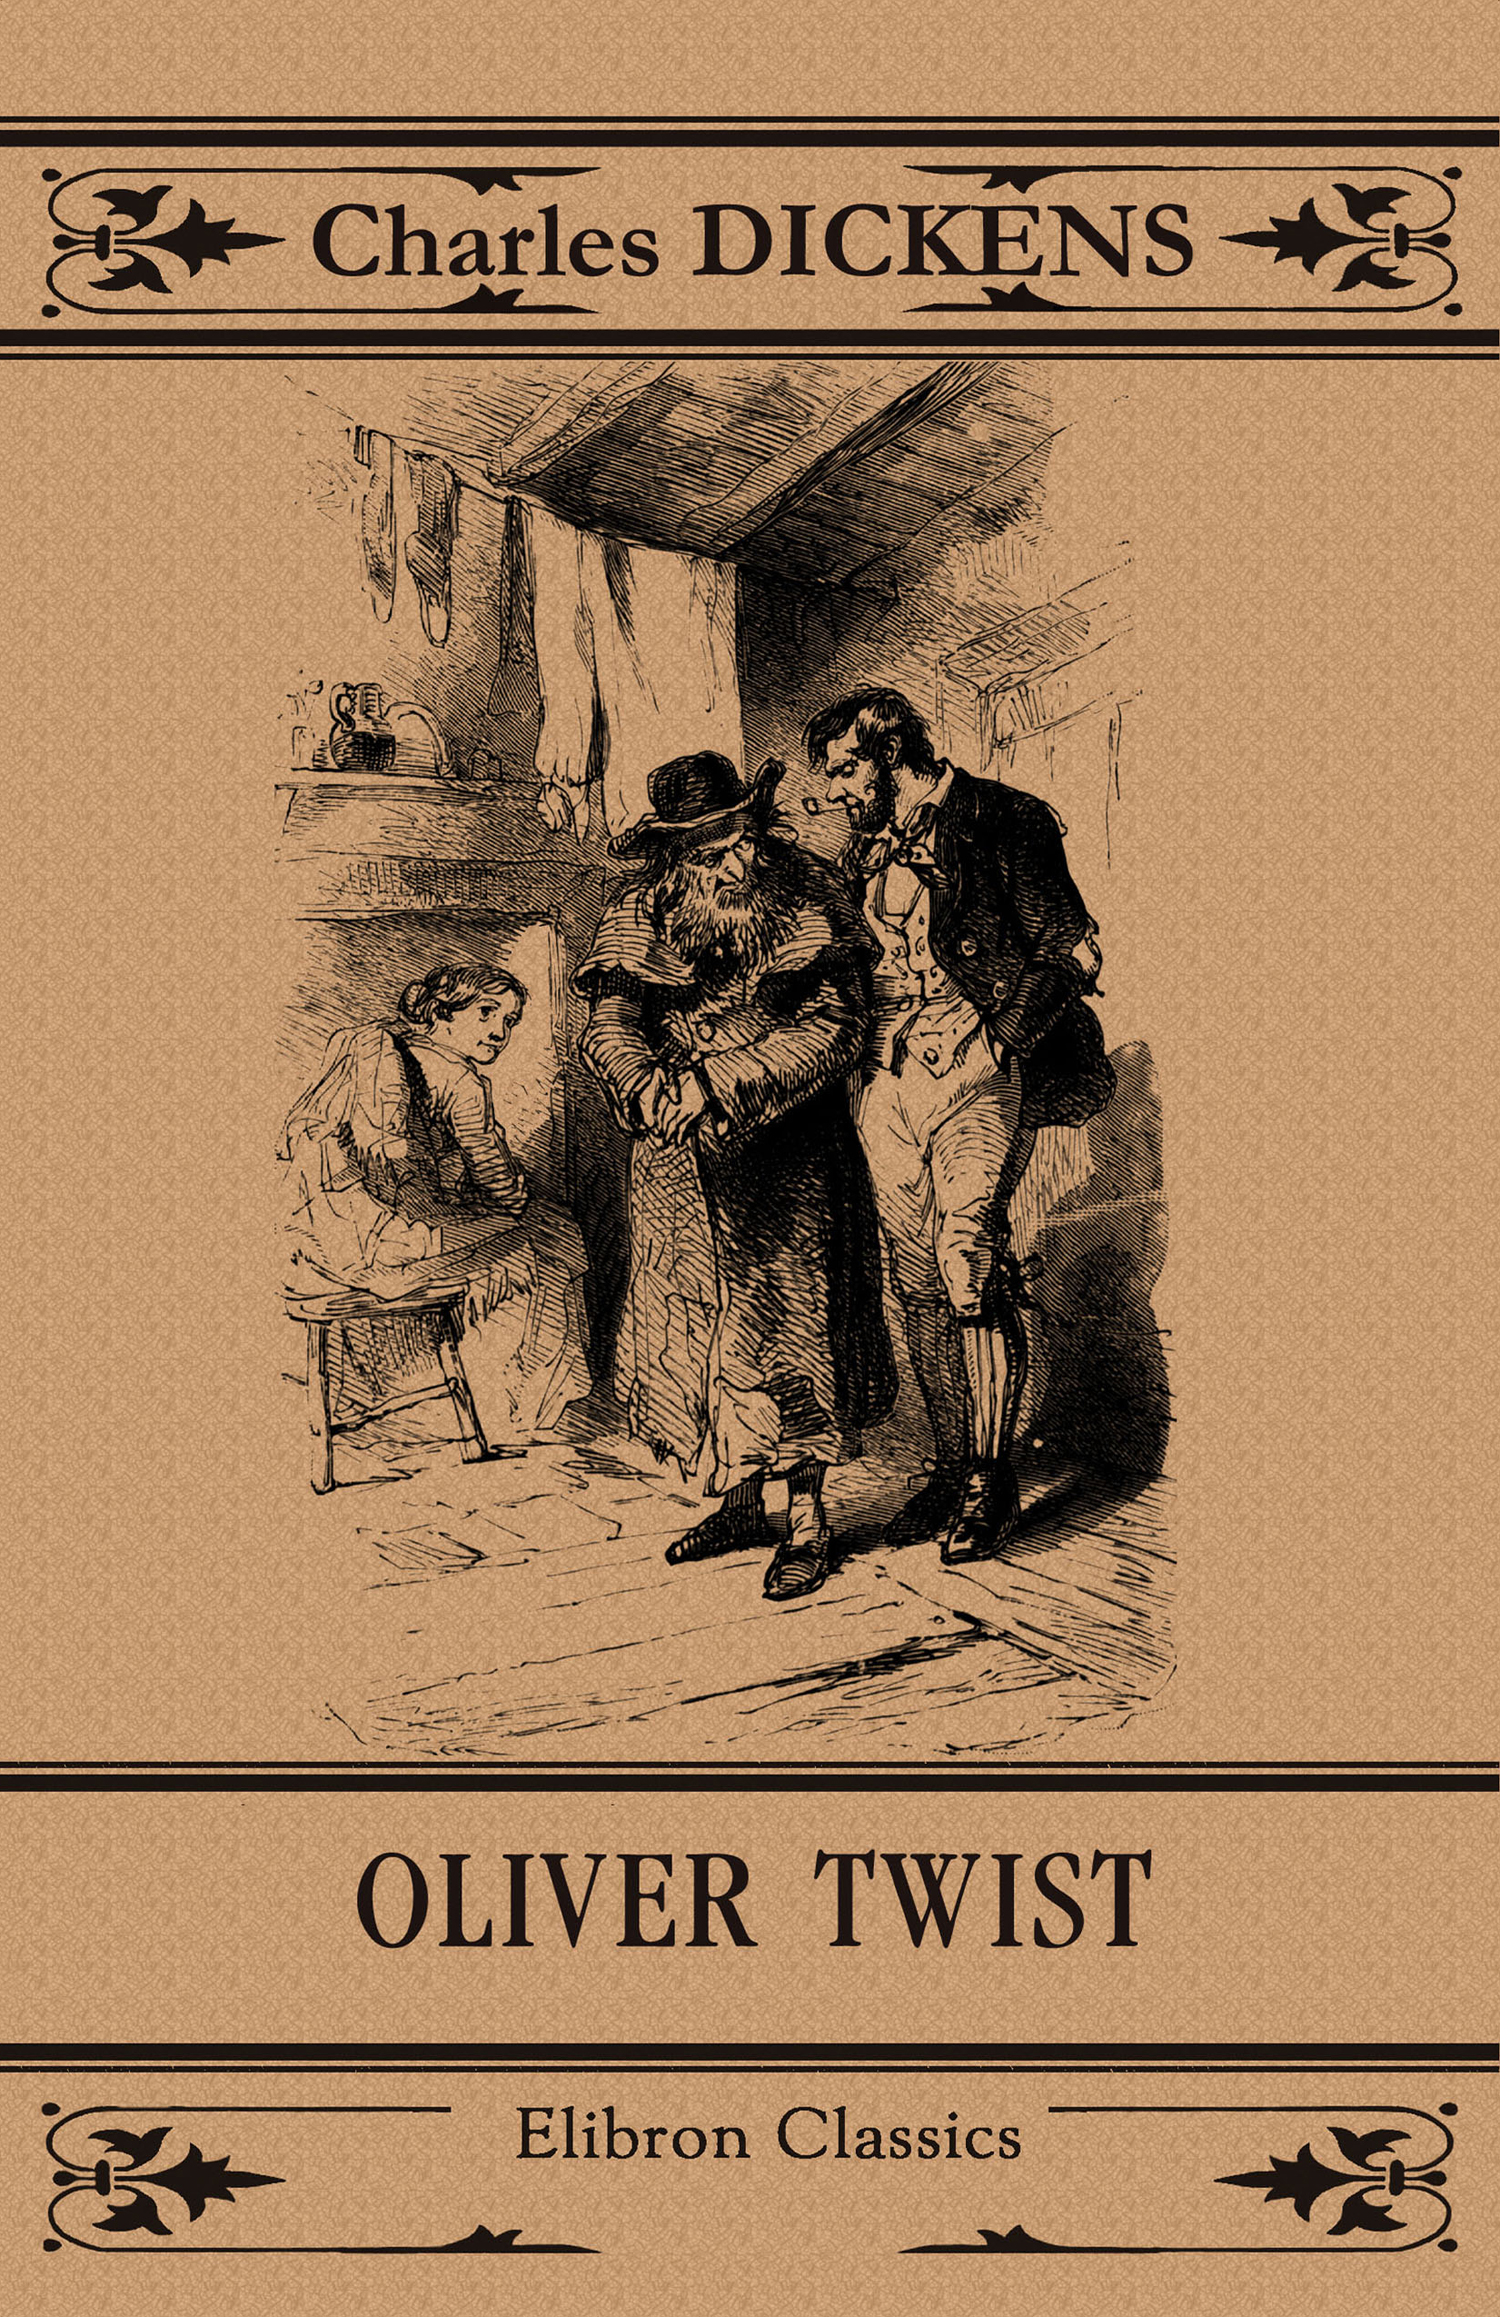 the social issues in oliver twist a novel by charles dickens Workhouse orphanage in which oliver twist is confined when the novel opens located approximately seventy-five miles north of london, the workhouse plays an important role in the mood, atmosphere.